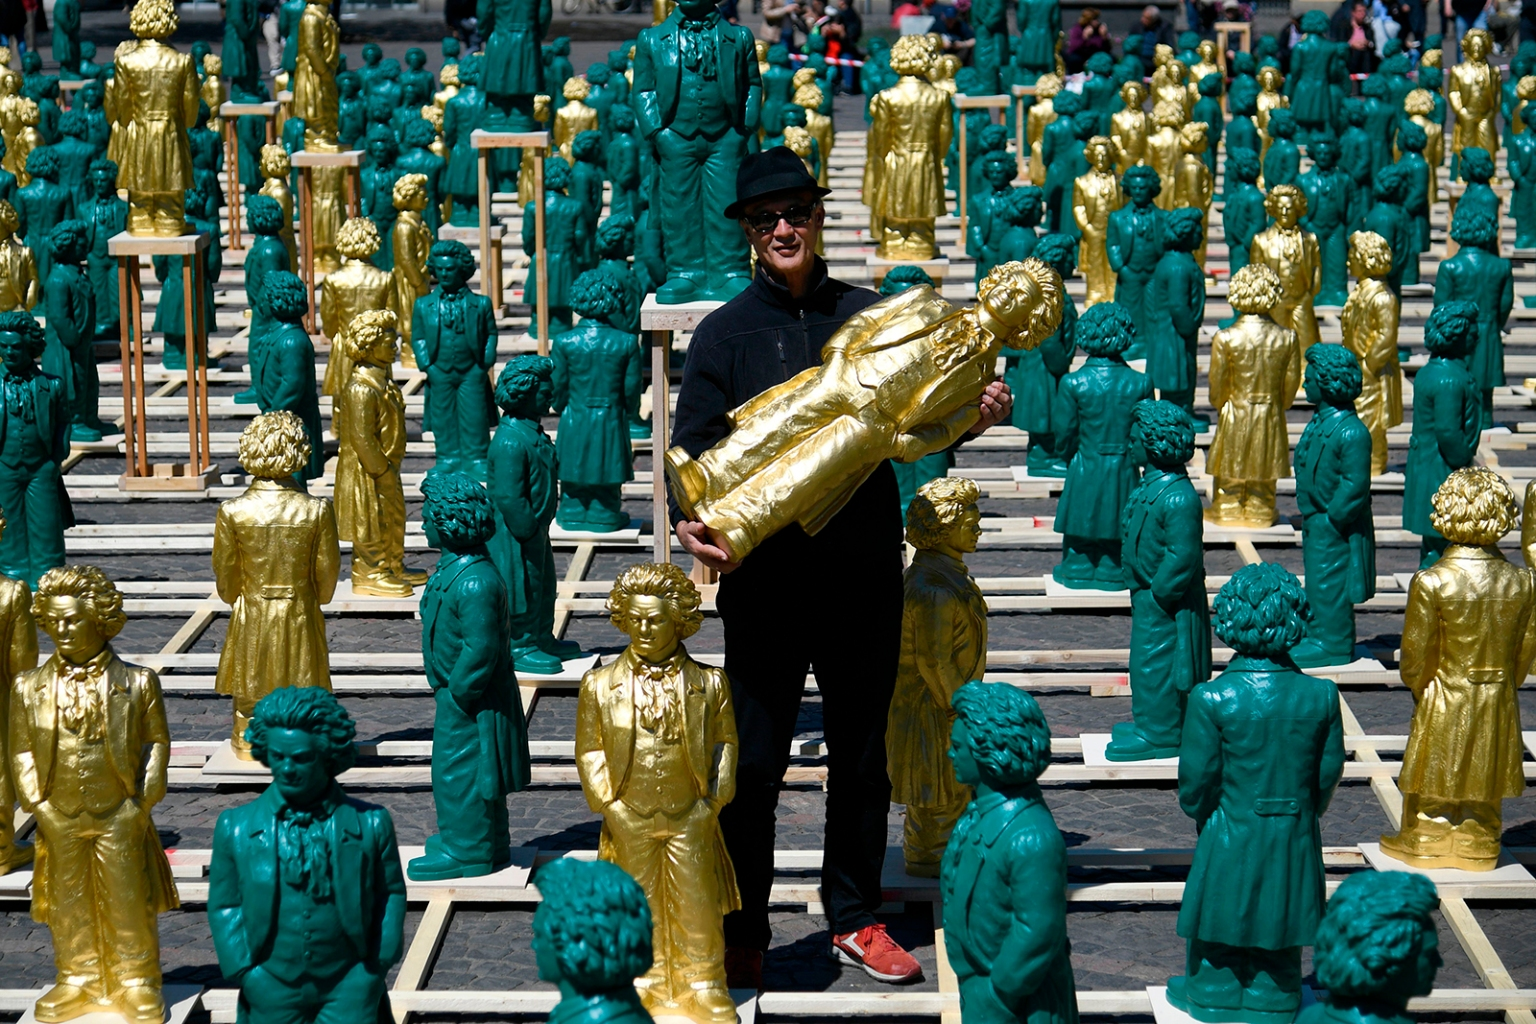 German conceptual artist Ottmar Hoerl poses next to some of his sculptures representing German composer Ludwig van Beethoven at the Muensterplatz square in Bonn, western Germany, on May 15. Around 700 sculptures by the artist are displayed in the city until June 2 as part of the festivities to mark the 250th anniversary of Beethoven's birth. INA FASSBENDER/AFP/Getty Images